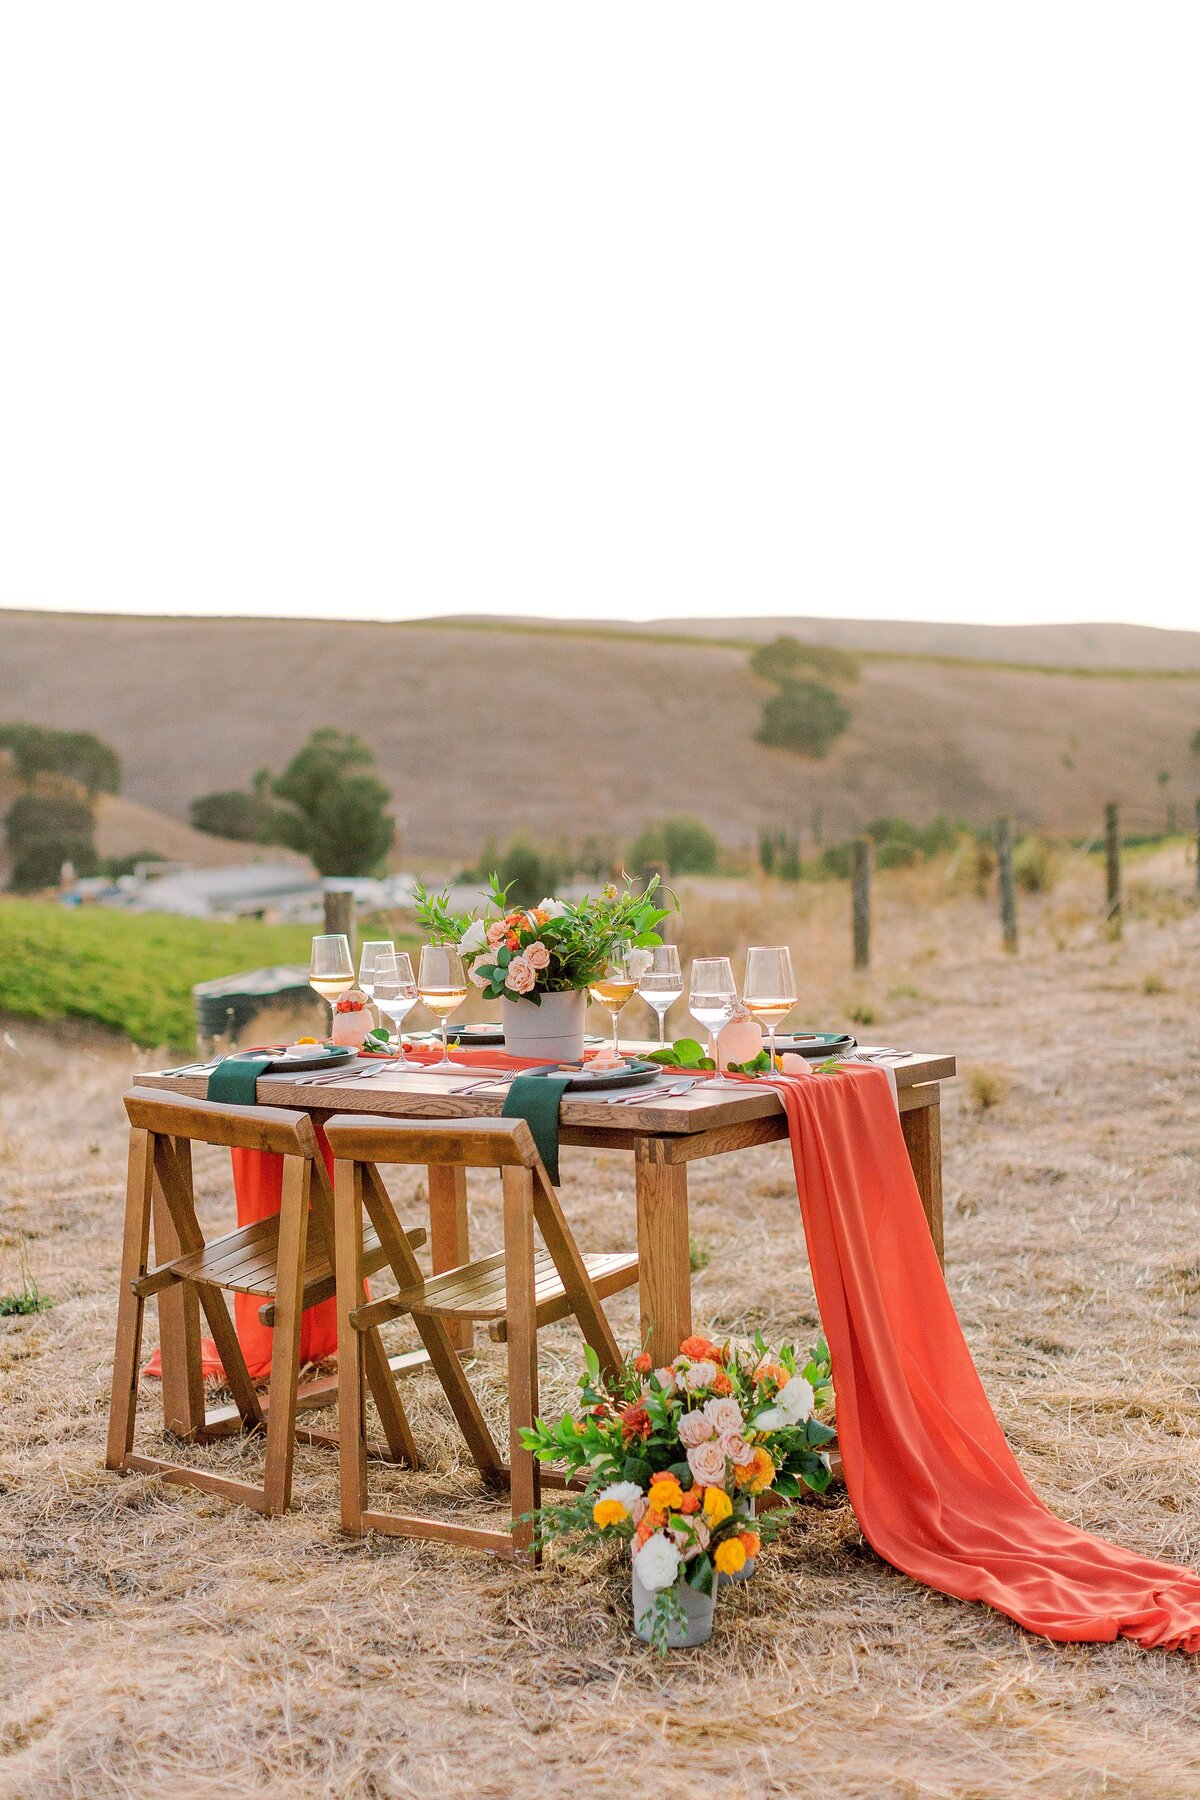 20191020 Modern Elegance Wedding Styled Shoot at Three Steves Winery Livermore_Bethany Picone Photography-250_WEB